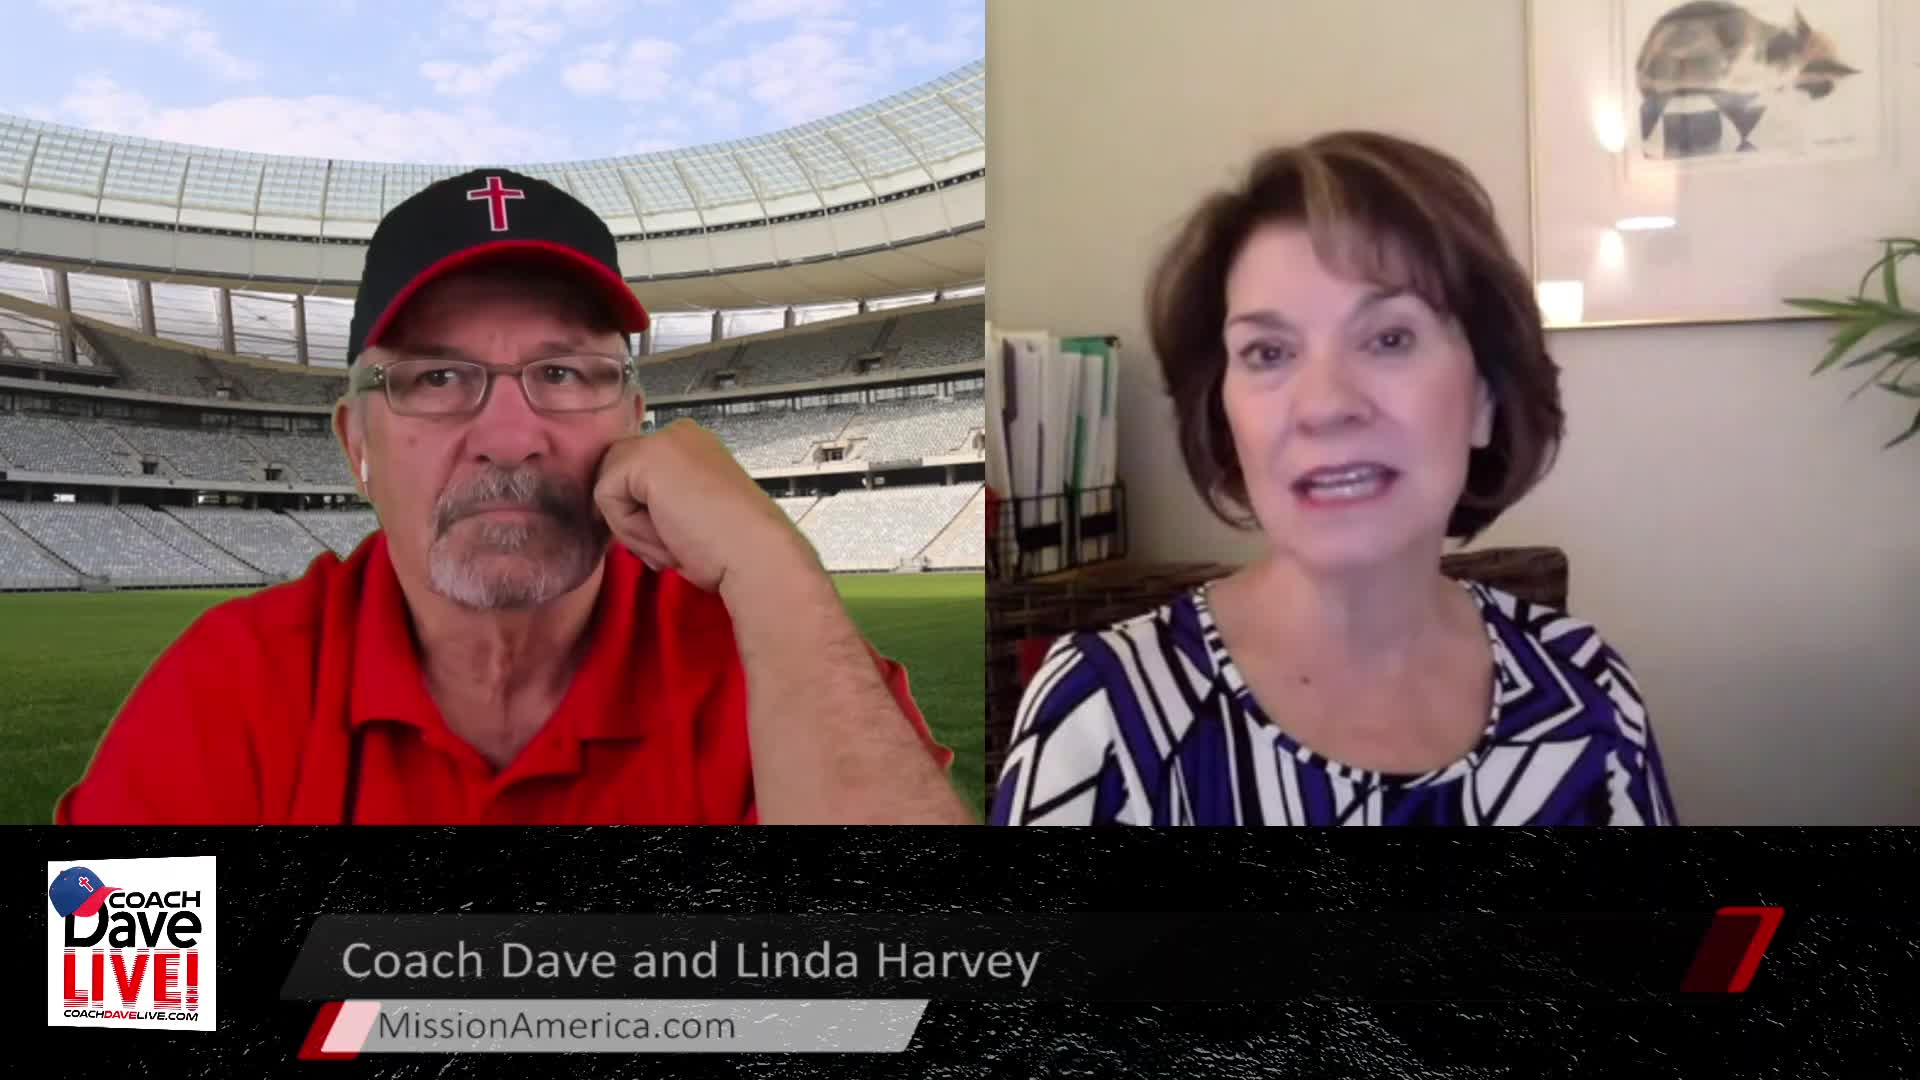 Coach Dave LIVE | 4-7-2021 | SPECIAL GUEST LINDA HARVEY OF MISSION AMERICA